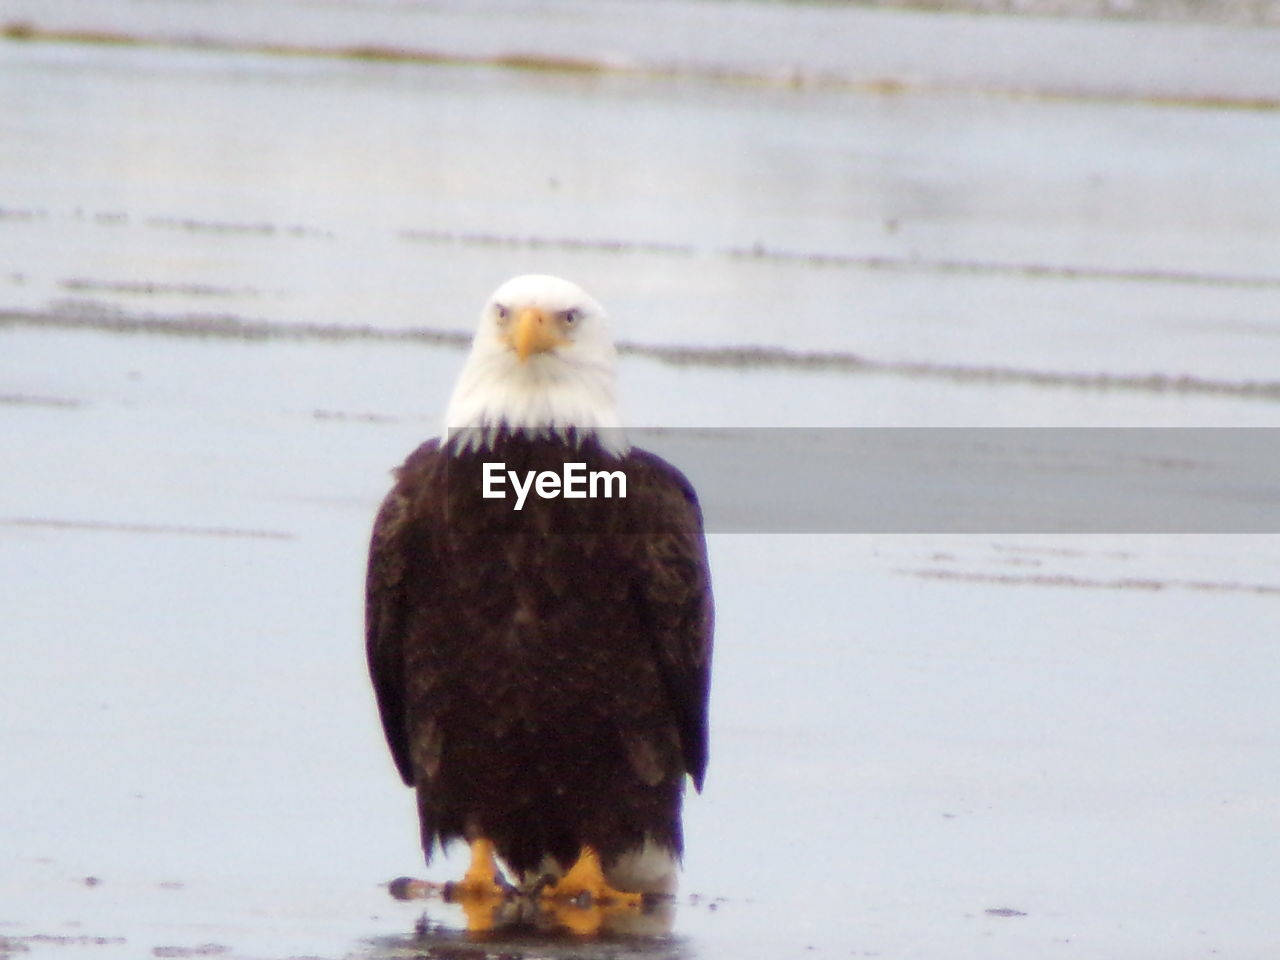 bird, one animal, animal themes, nature, bald eagle, no people, animals in the wild, day, close-up, outdoors, perching, bird of prey, beauty in nature